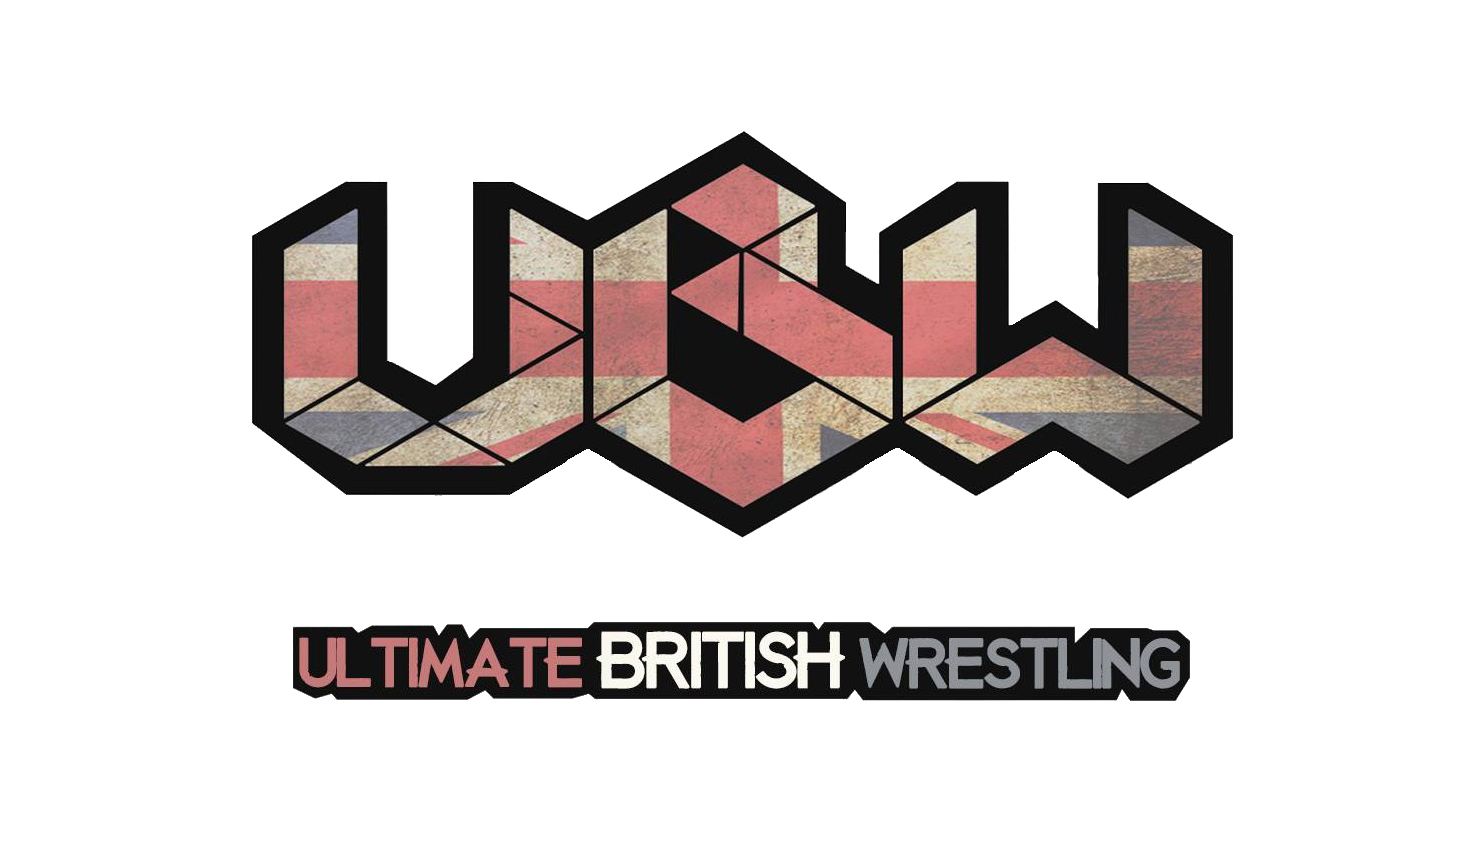 Ultimate British Wrestling